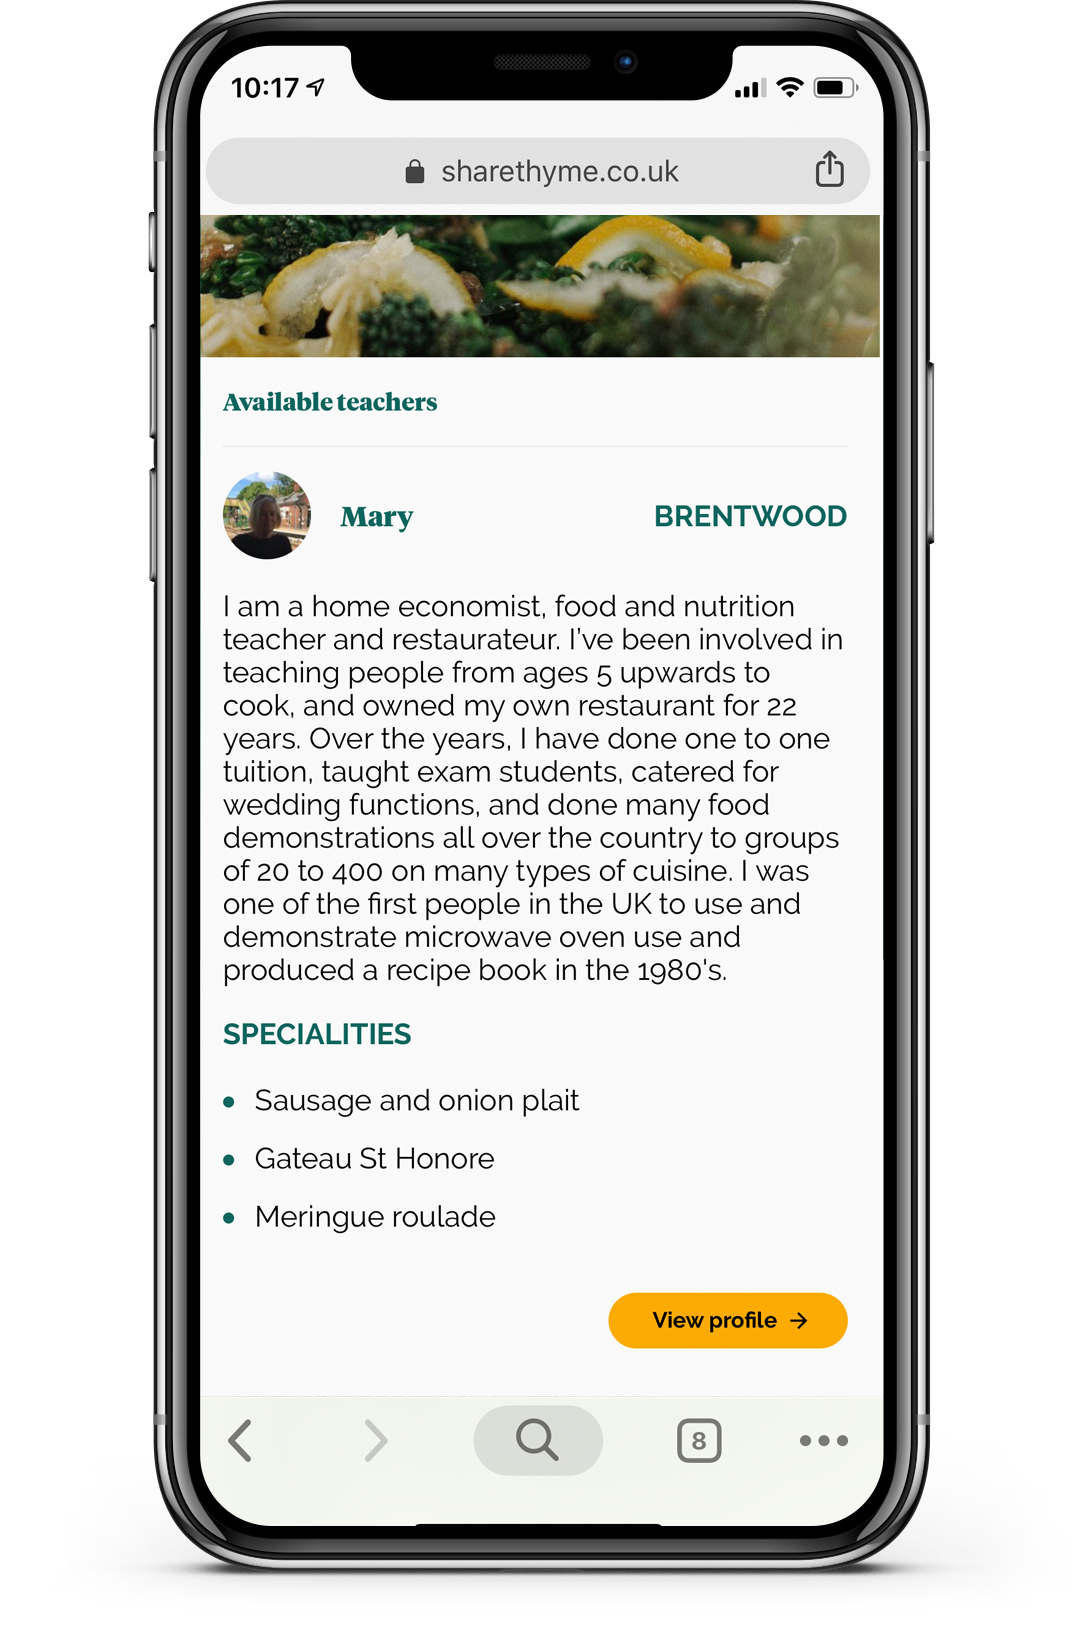 Screen 2: Mobile view of the ShareThyme teacher page.